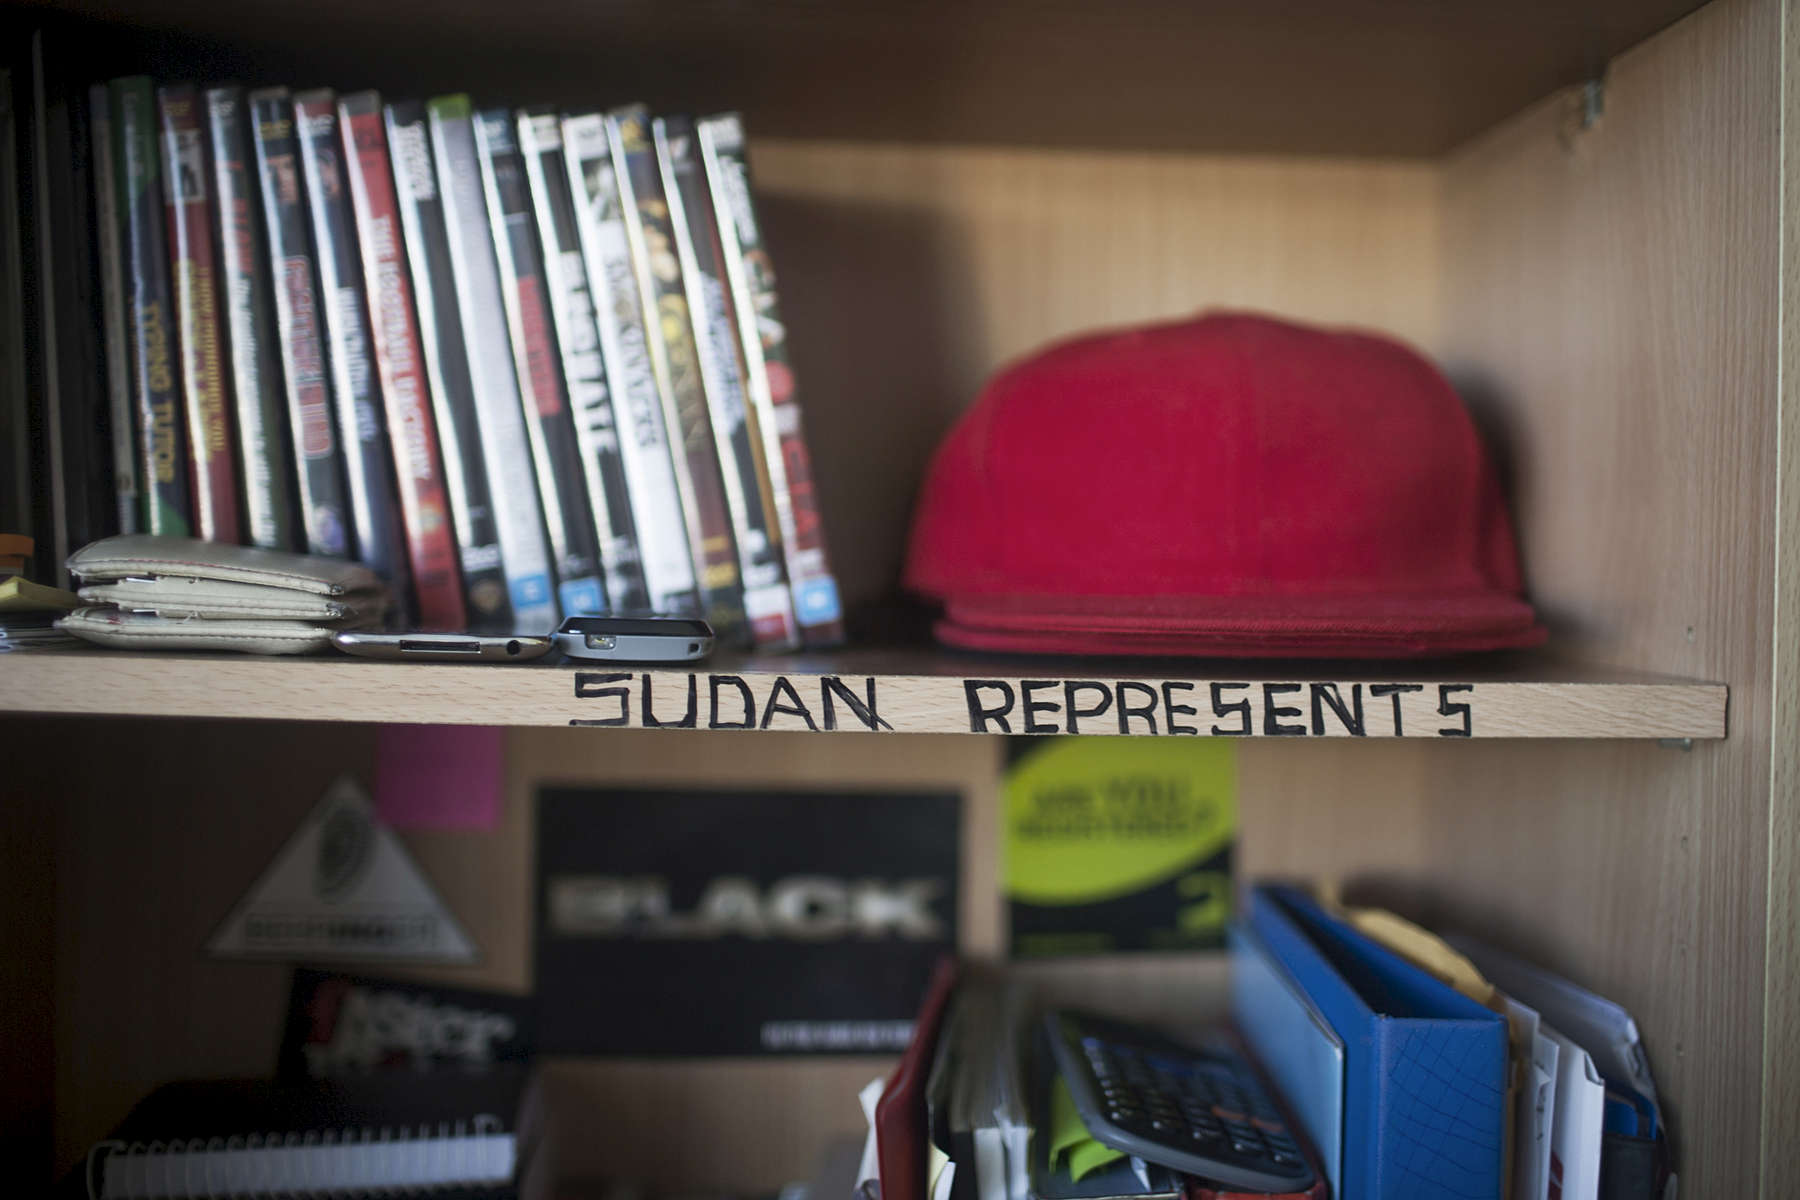 Apa Manyang has written 'Sudan Represents' along the edge of his desk at home in Newcastle, 2010.  Apa commonly known by his musical name 'Willo da Kid' arrived in Australia with his Mother and 5 siblings in 2004. Apa is now studying music at Australian Institute of Music and collaborates with a range of artists.